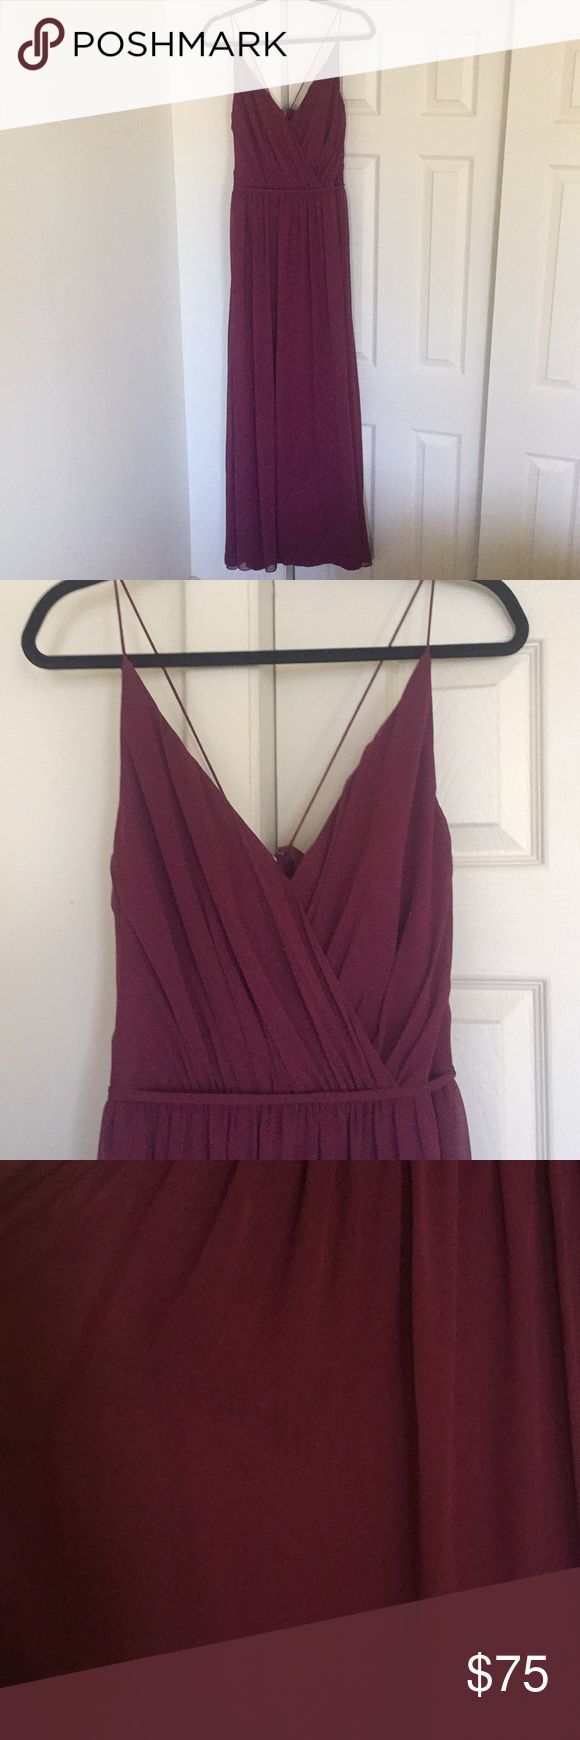 """Hayley Paige Occasions// burgundy bridesmaid dress Beautiful floor length chiffon bridesmaids dress from Hayley Paige.  Worn once.  Beautiful burgundy color.  Does have small stain just below the belted waist (shown in last picture) but beyond that in great condition. I'm 5'10"""" and wore flats for the wedding i was in and it just touched the floor.  Listed as size 16, fits more like an 8-10 Hayley Paige Occasion Dresses Wedding"""